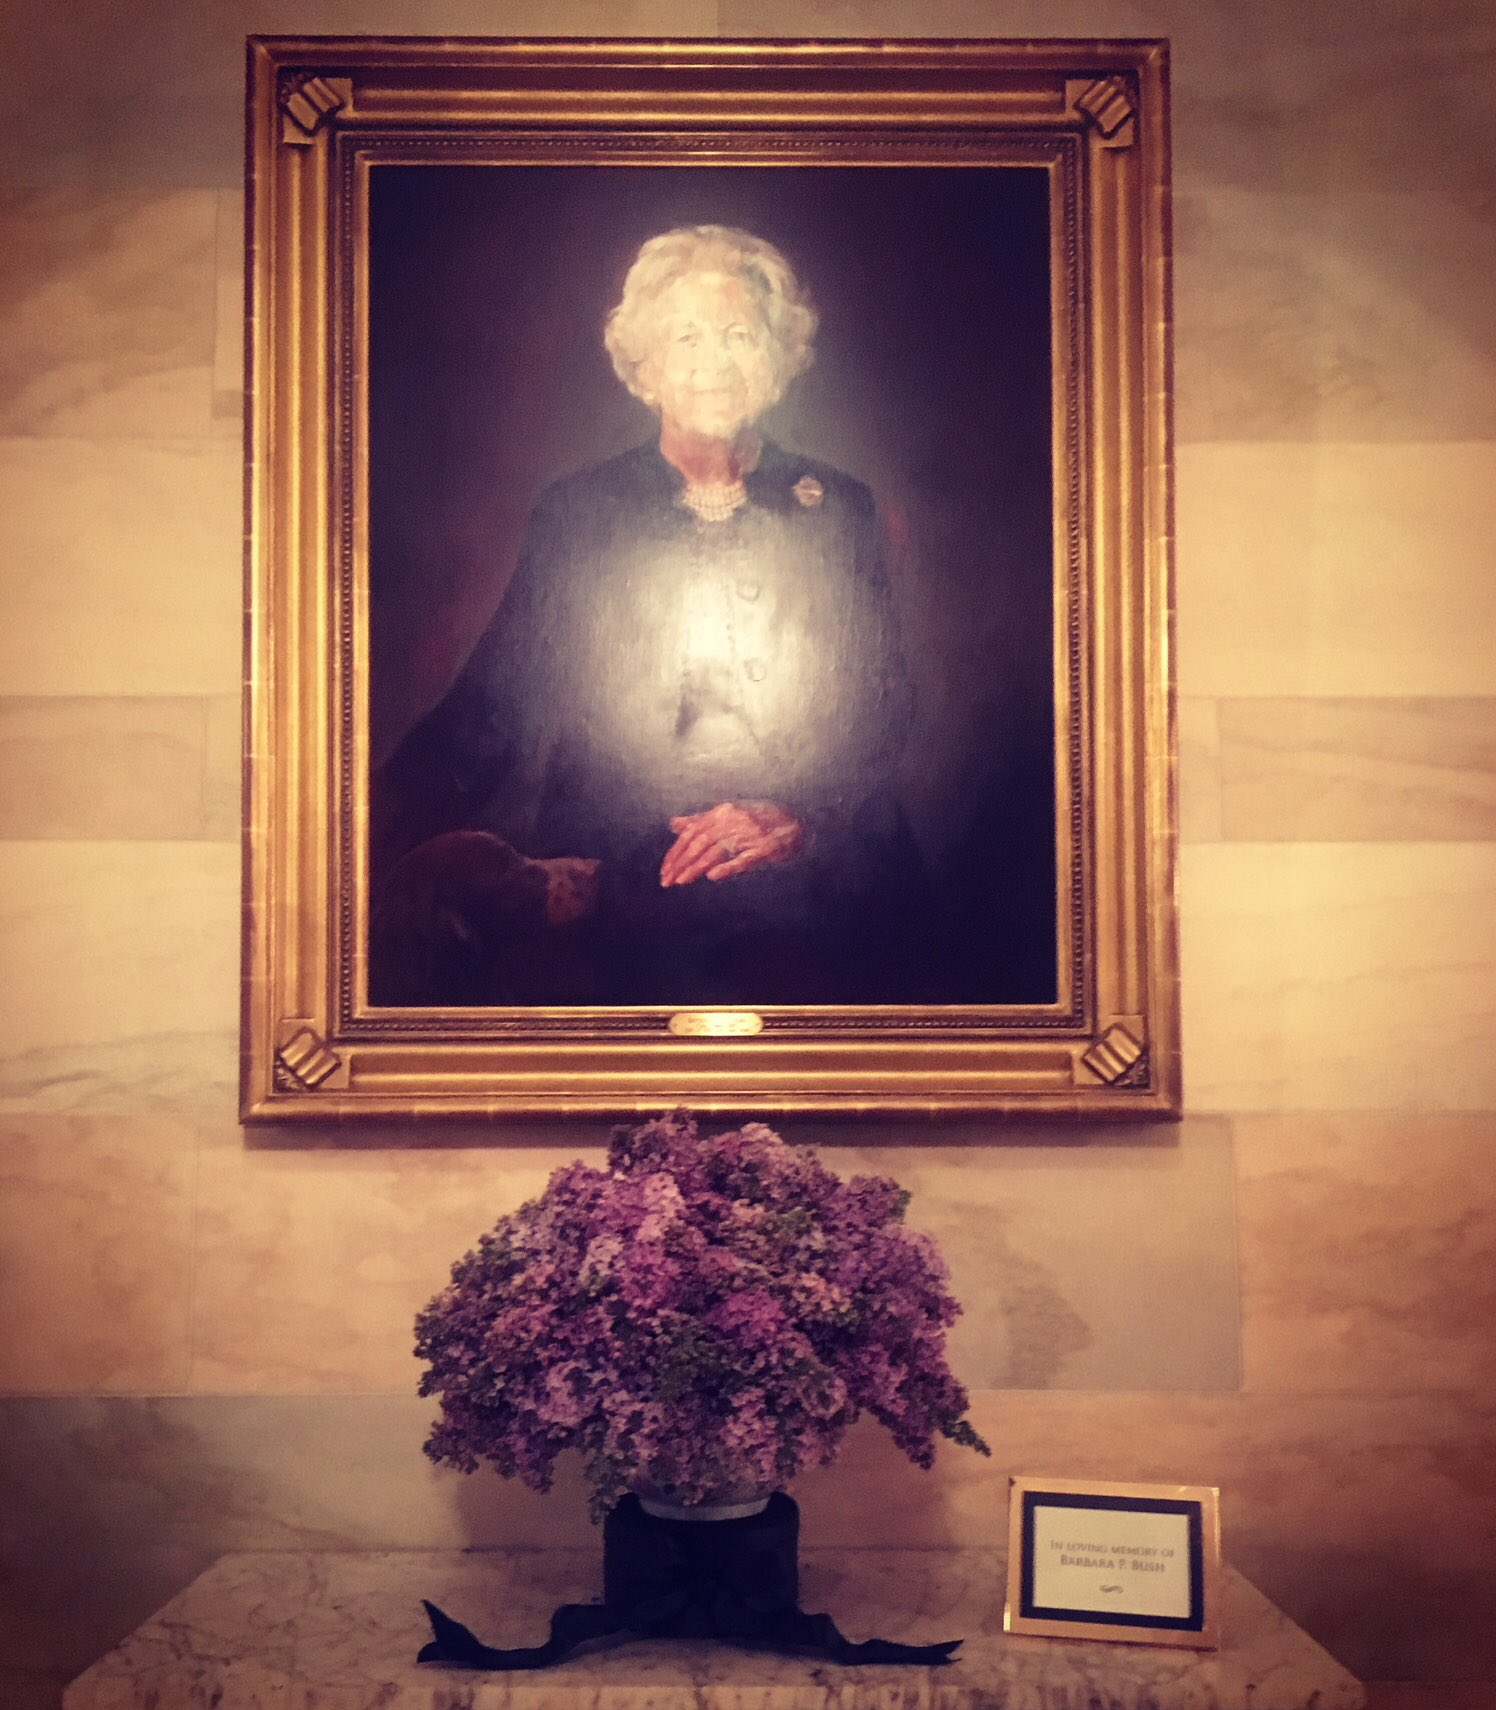 What a beautiful tribute to a wonderful woman who lived for God, family and country. https://t.co/sBKNmkgsI6